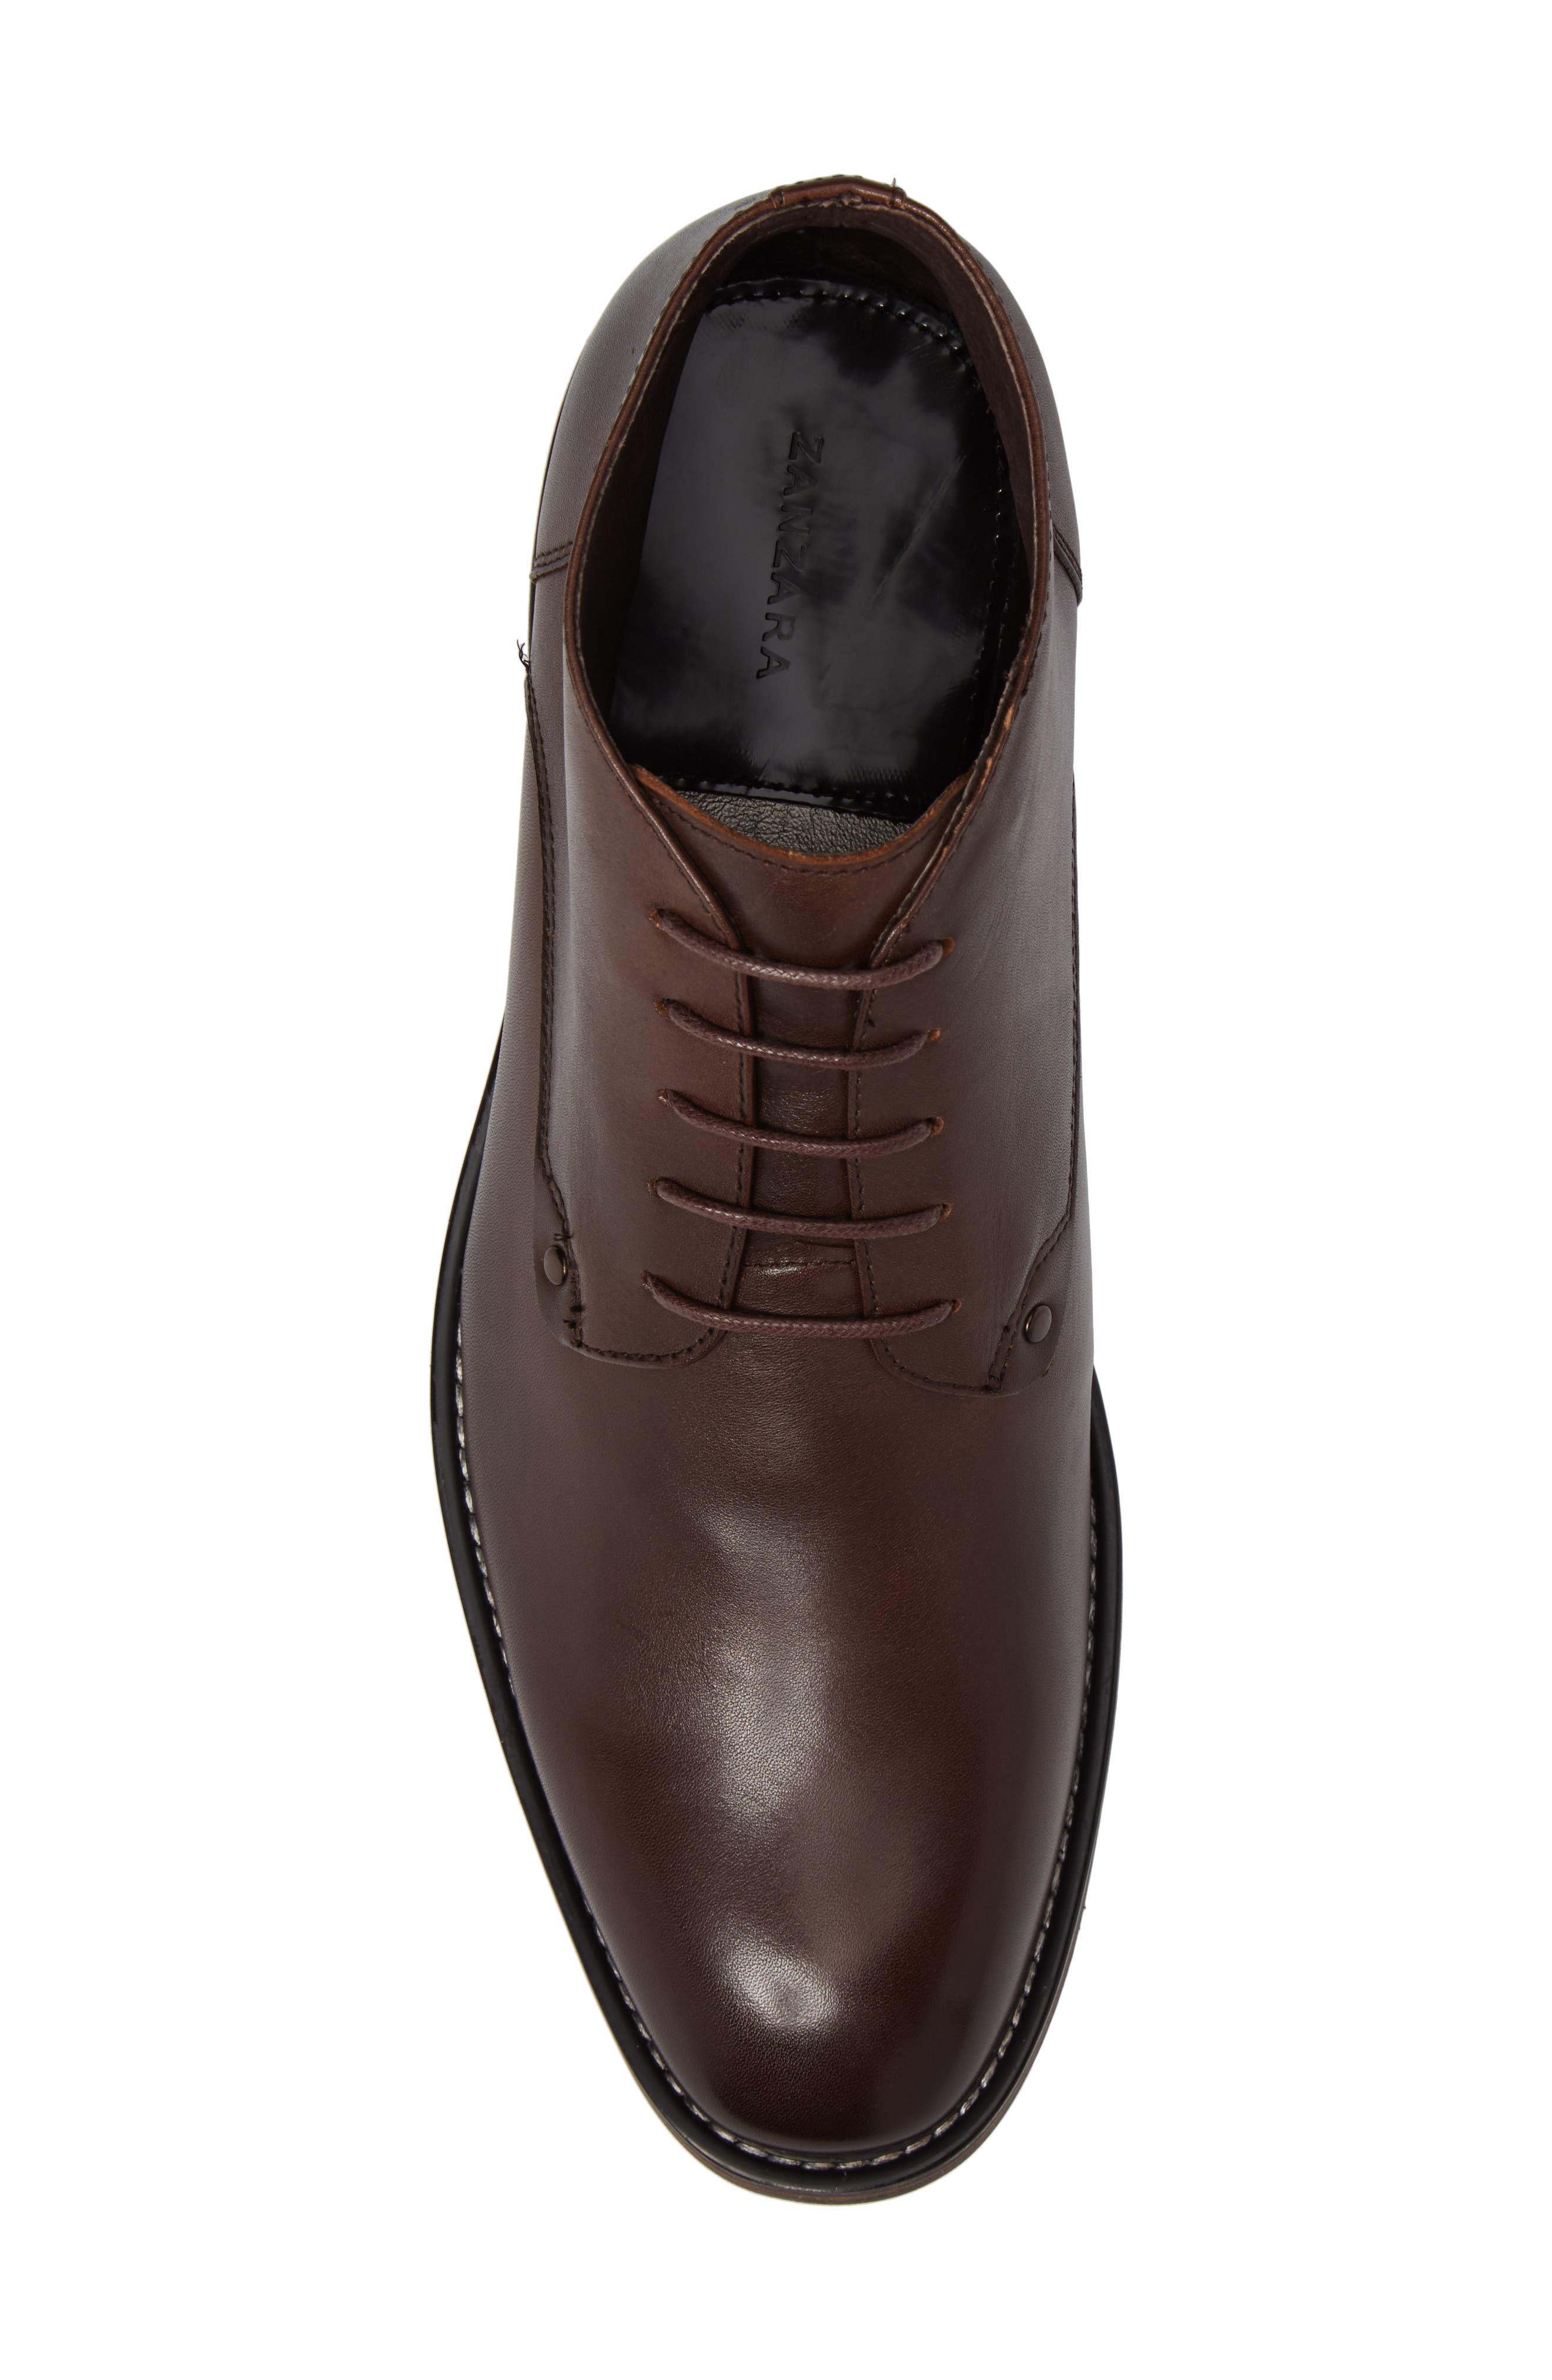 Malta Low Boot,                             Alternate thumbnail 5, color,                             Brown Leather